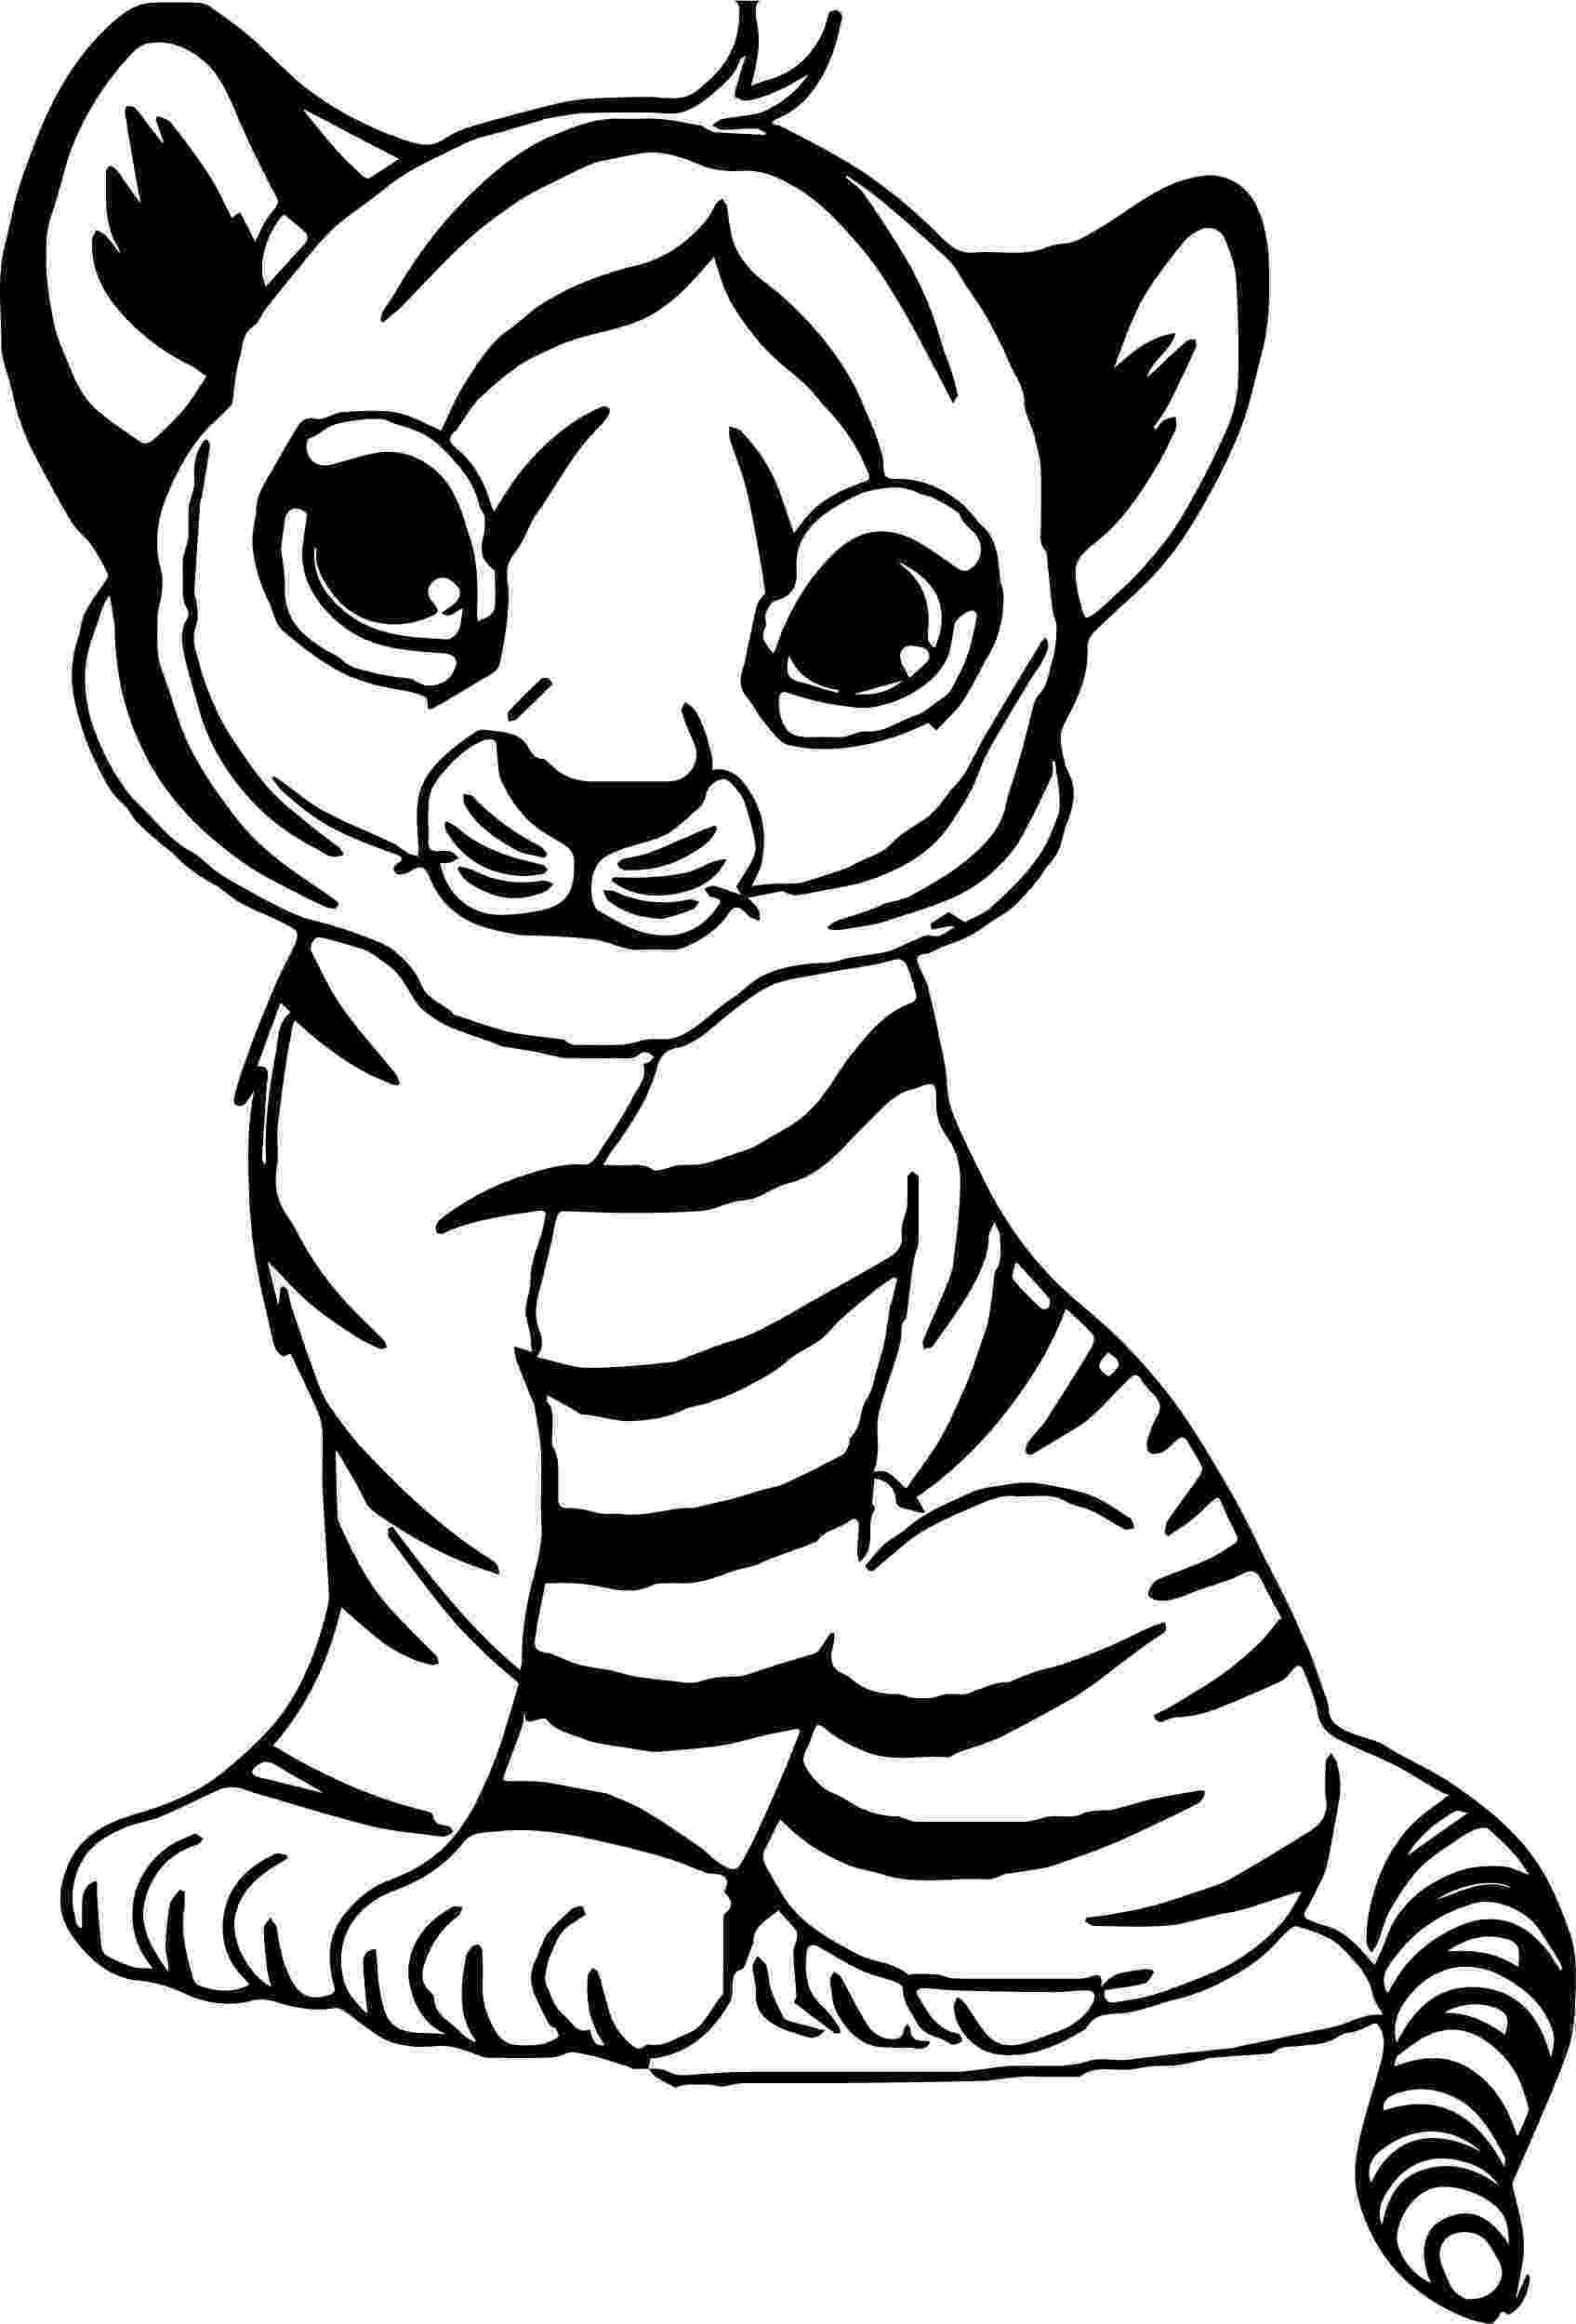 tiger to color pin by christopher soran on printable pictures for the color tiger to